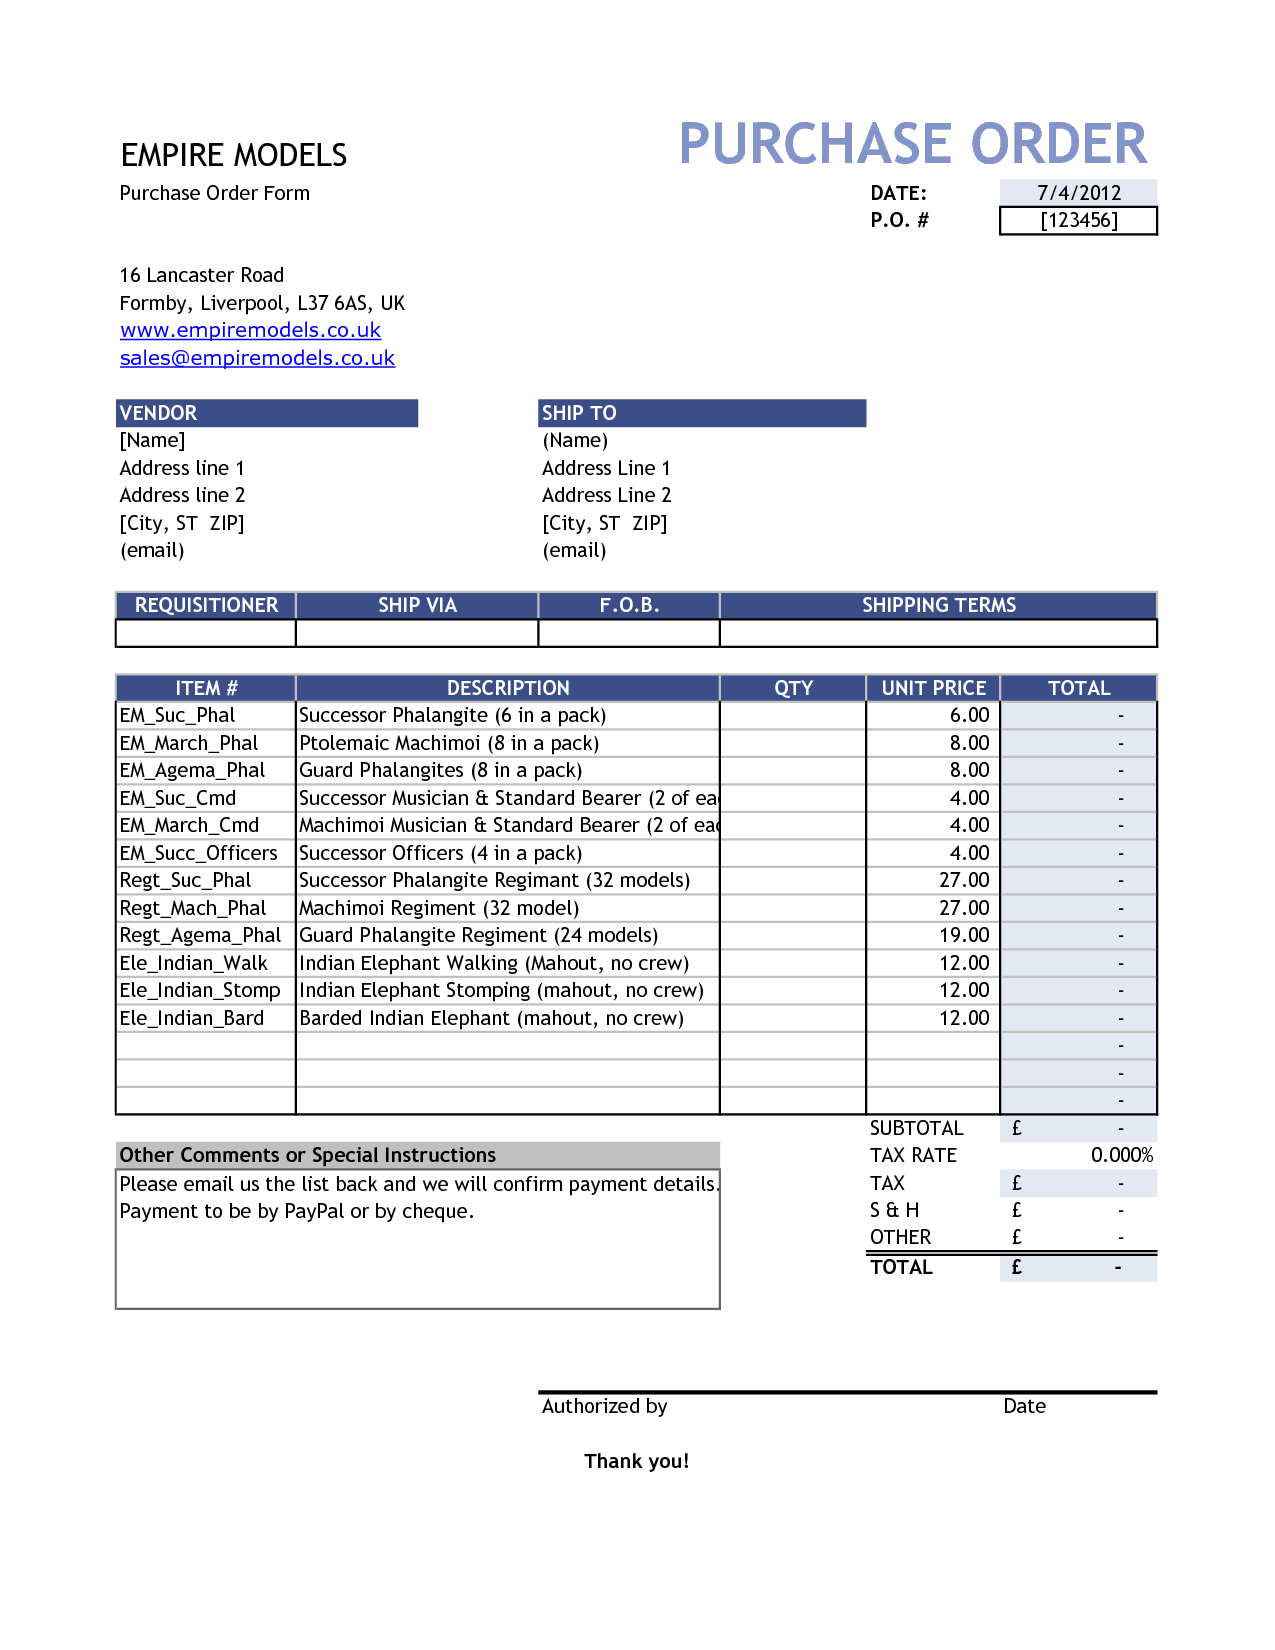 excel purchase order template download